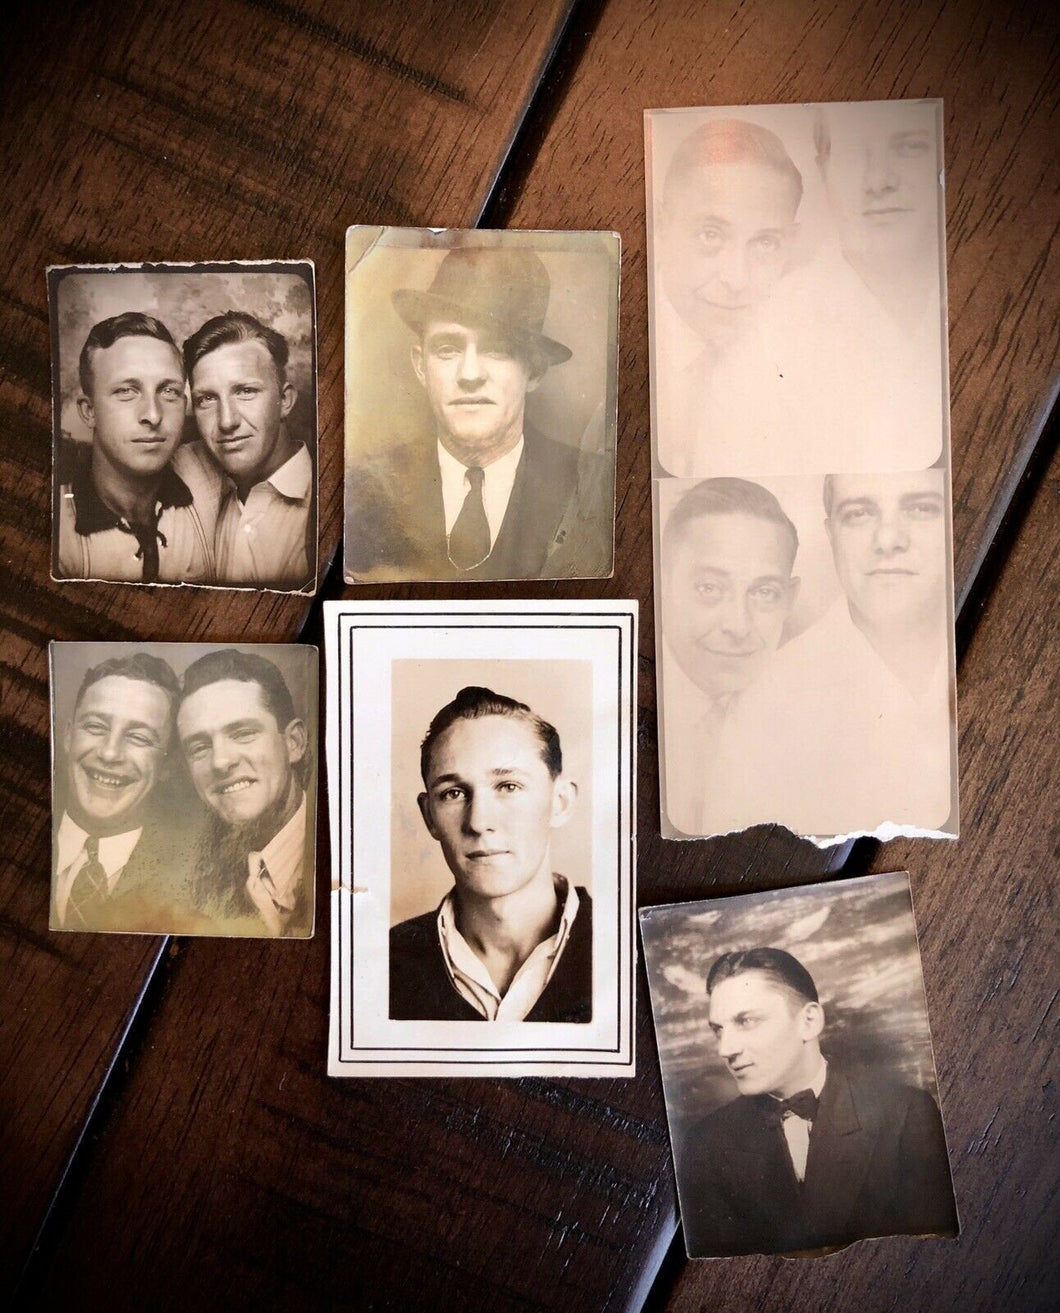 SIX Vintage Photo Booth Snapshots - All Men 1930s 1940s